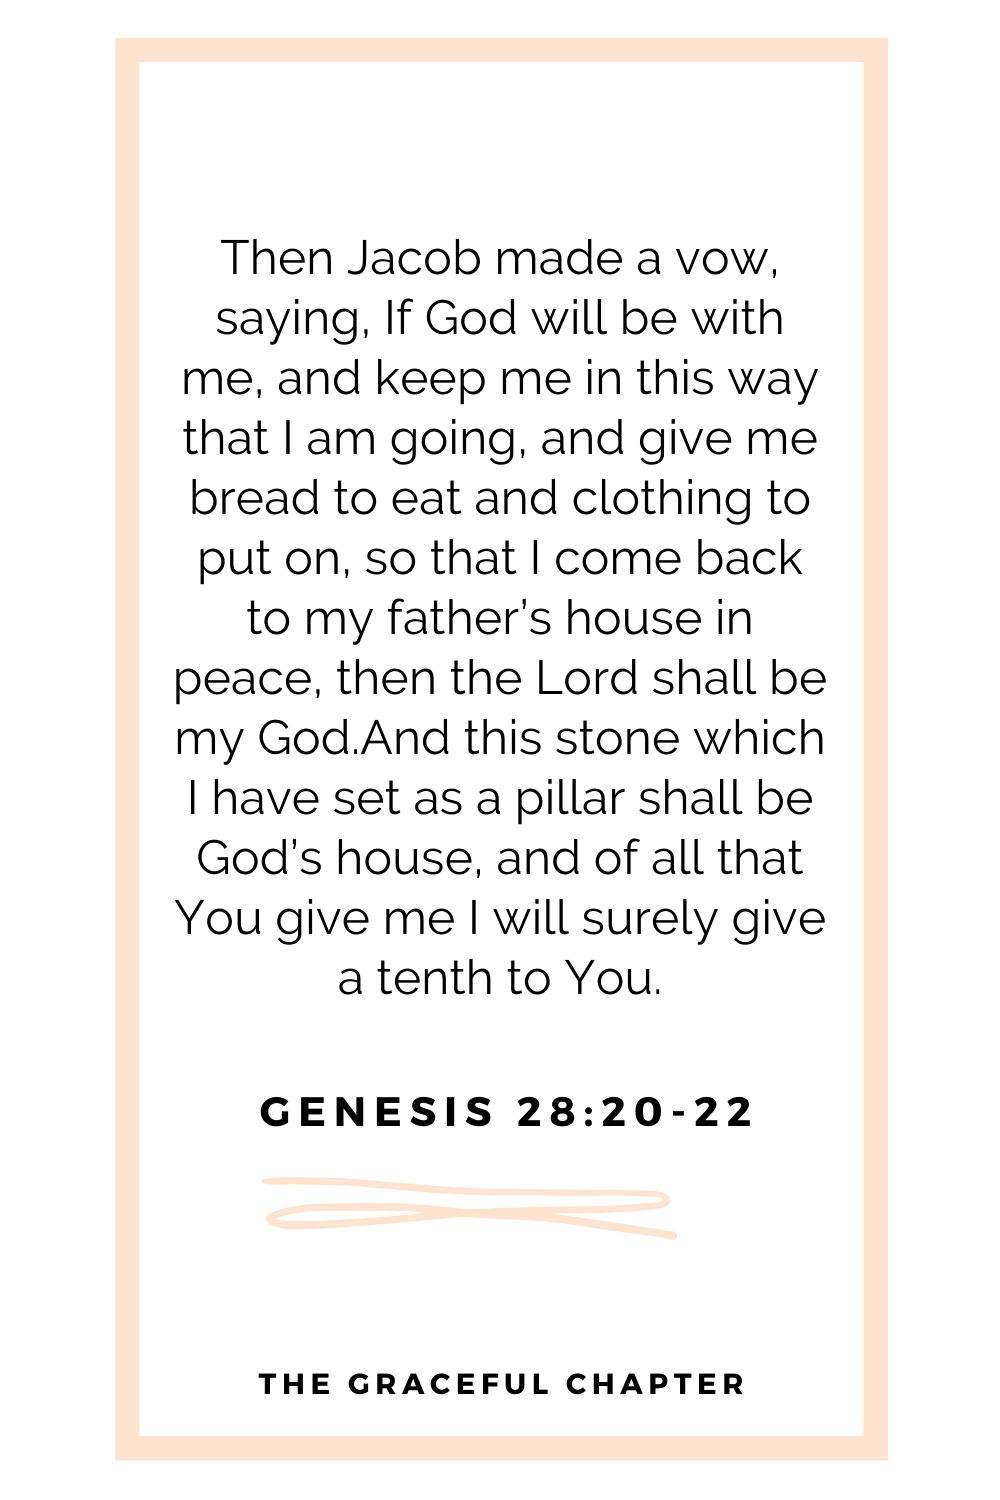 Then Jacob made a vow, saying, If God will be with me, and keep me in this way that I am going, and give me bread to eat and clothing to put on, so that I come back to my father's house in peace, then the Lord shall be my God.And this stone which I have set as a pillar shall be God's house, and of all that You give me I will surely give a tenth to You. Genesis 28:20-22